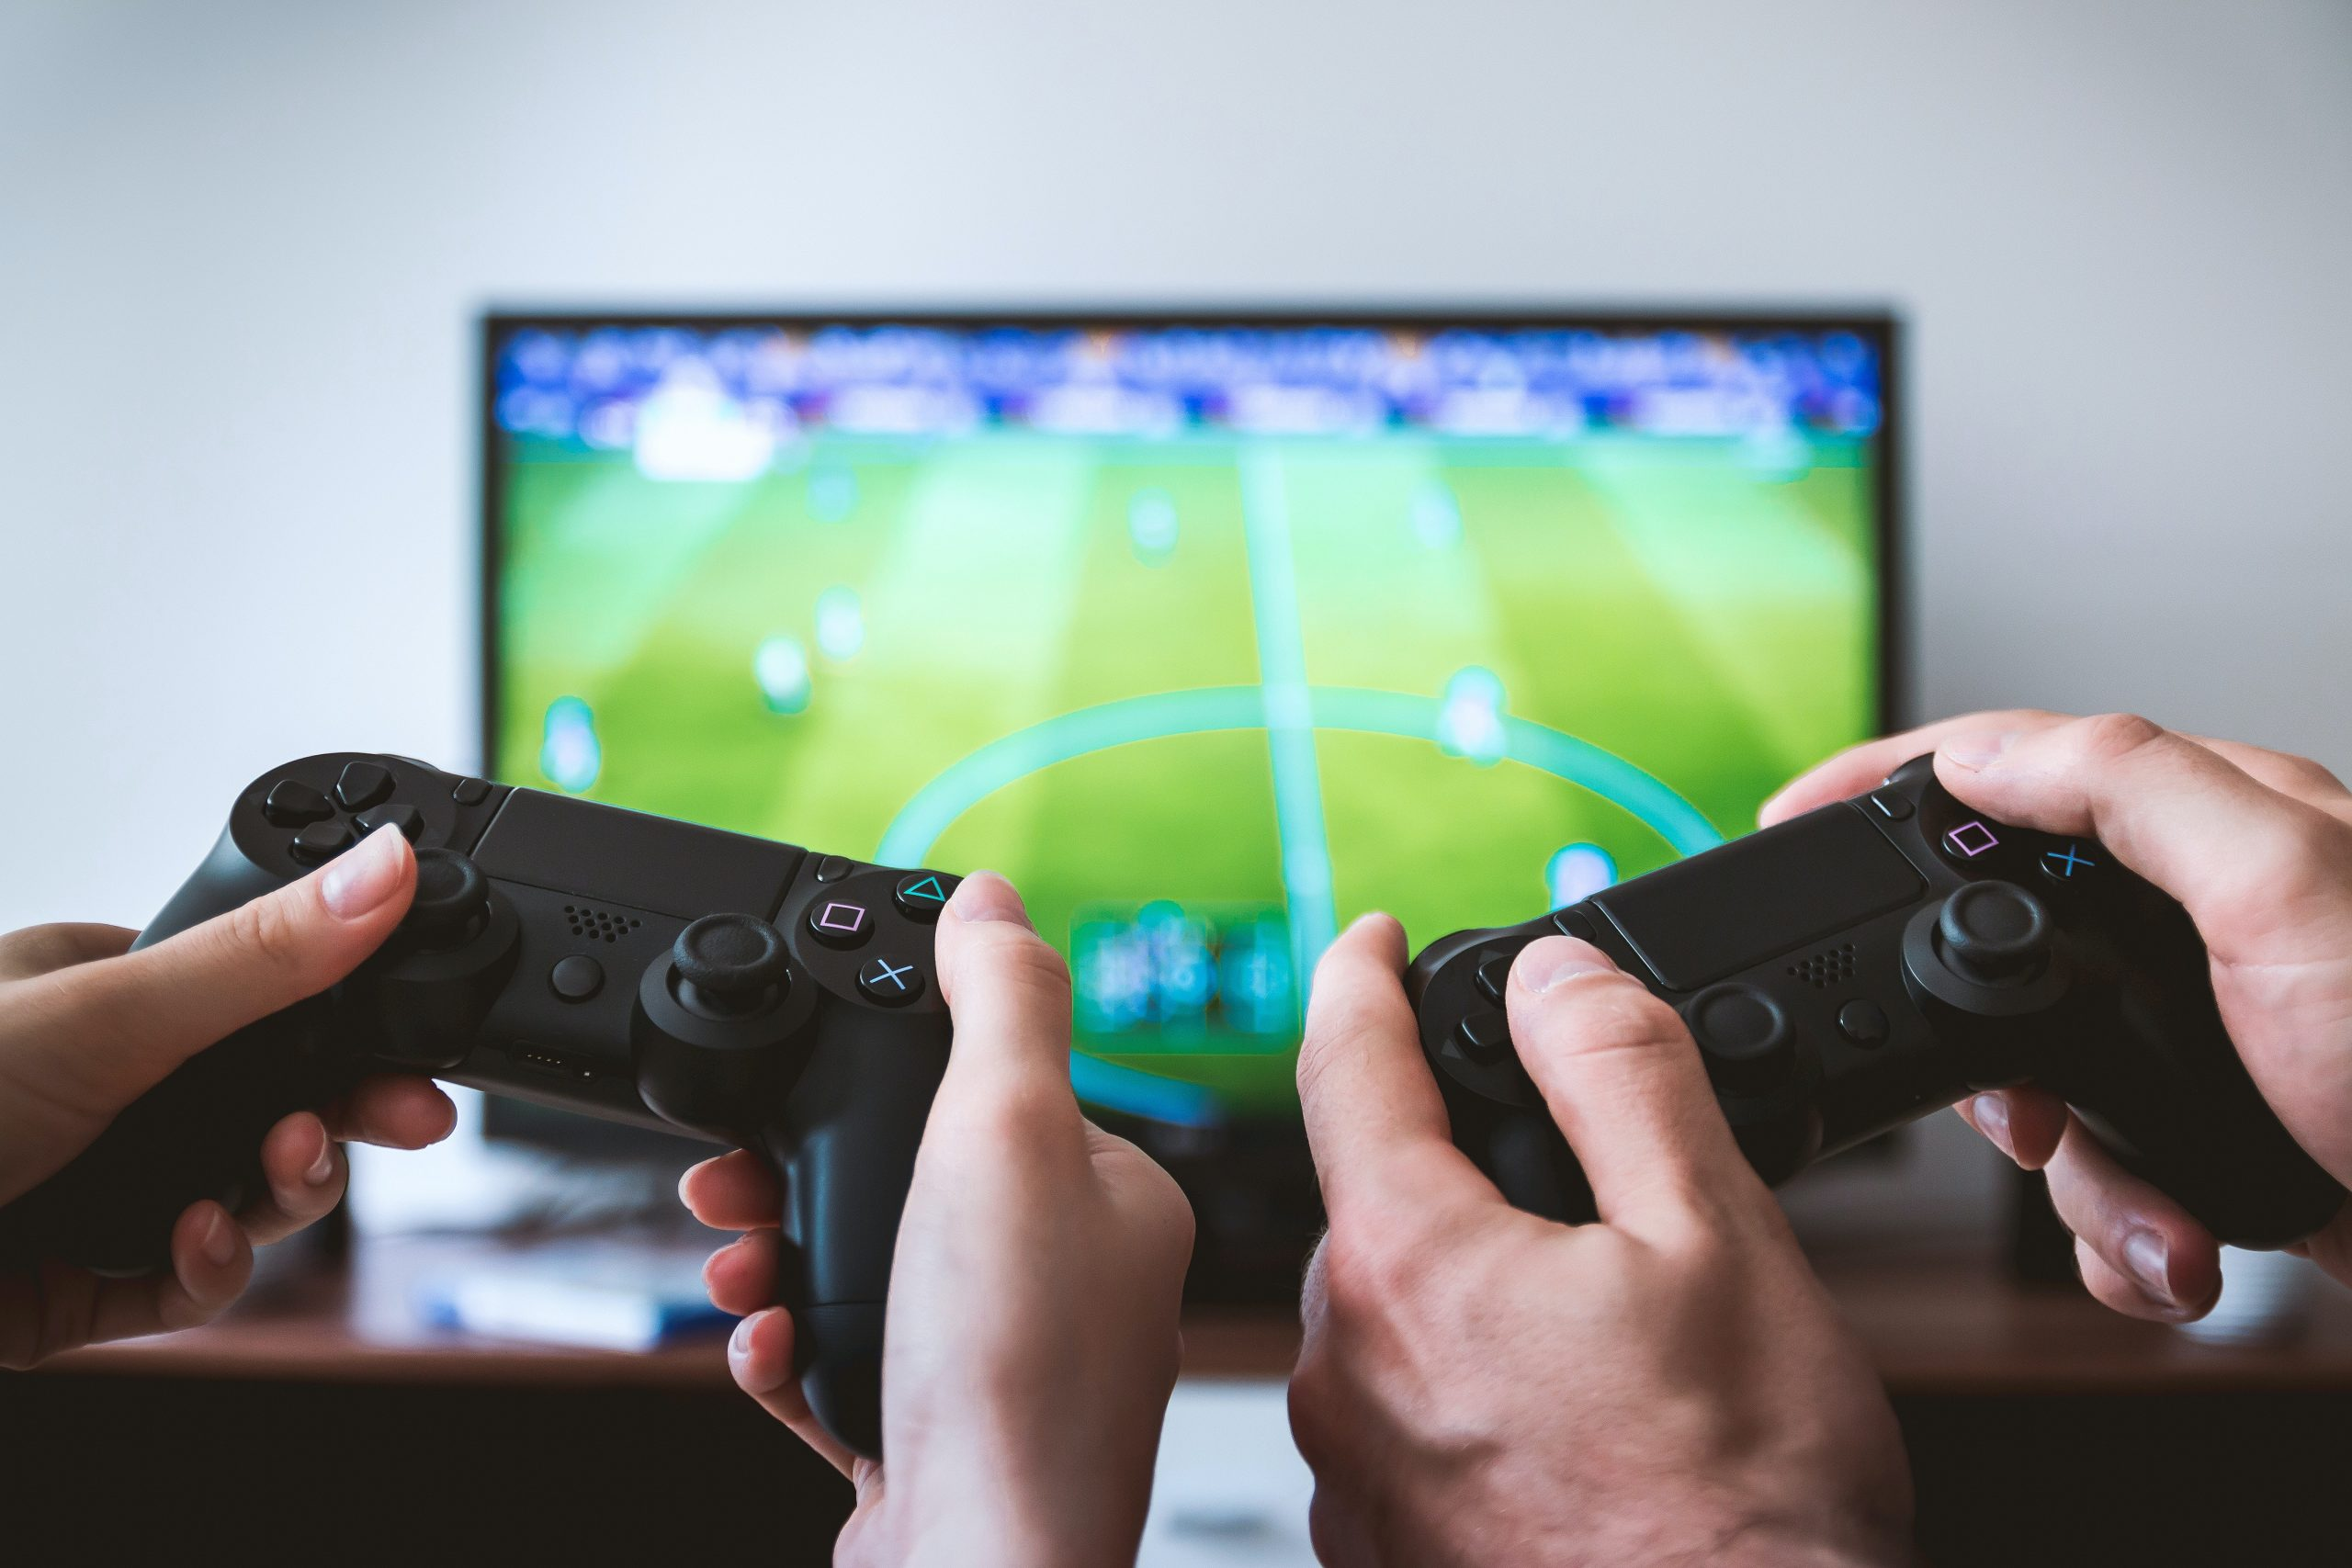 two people holding game consoles playing a video game